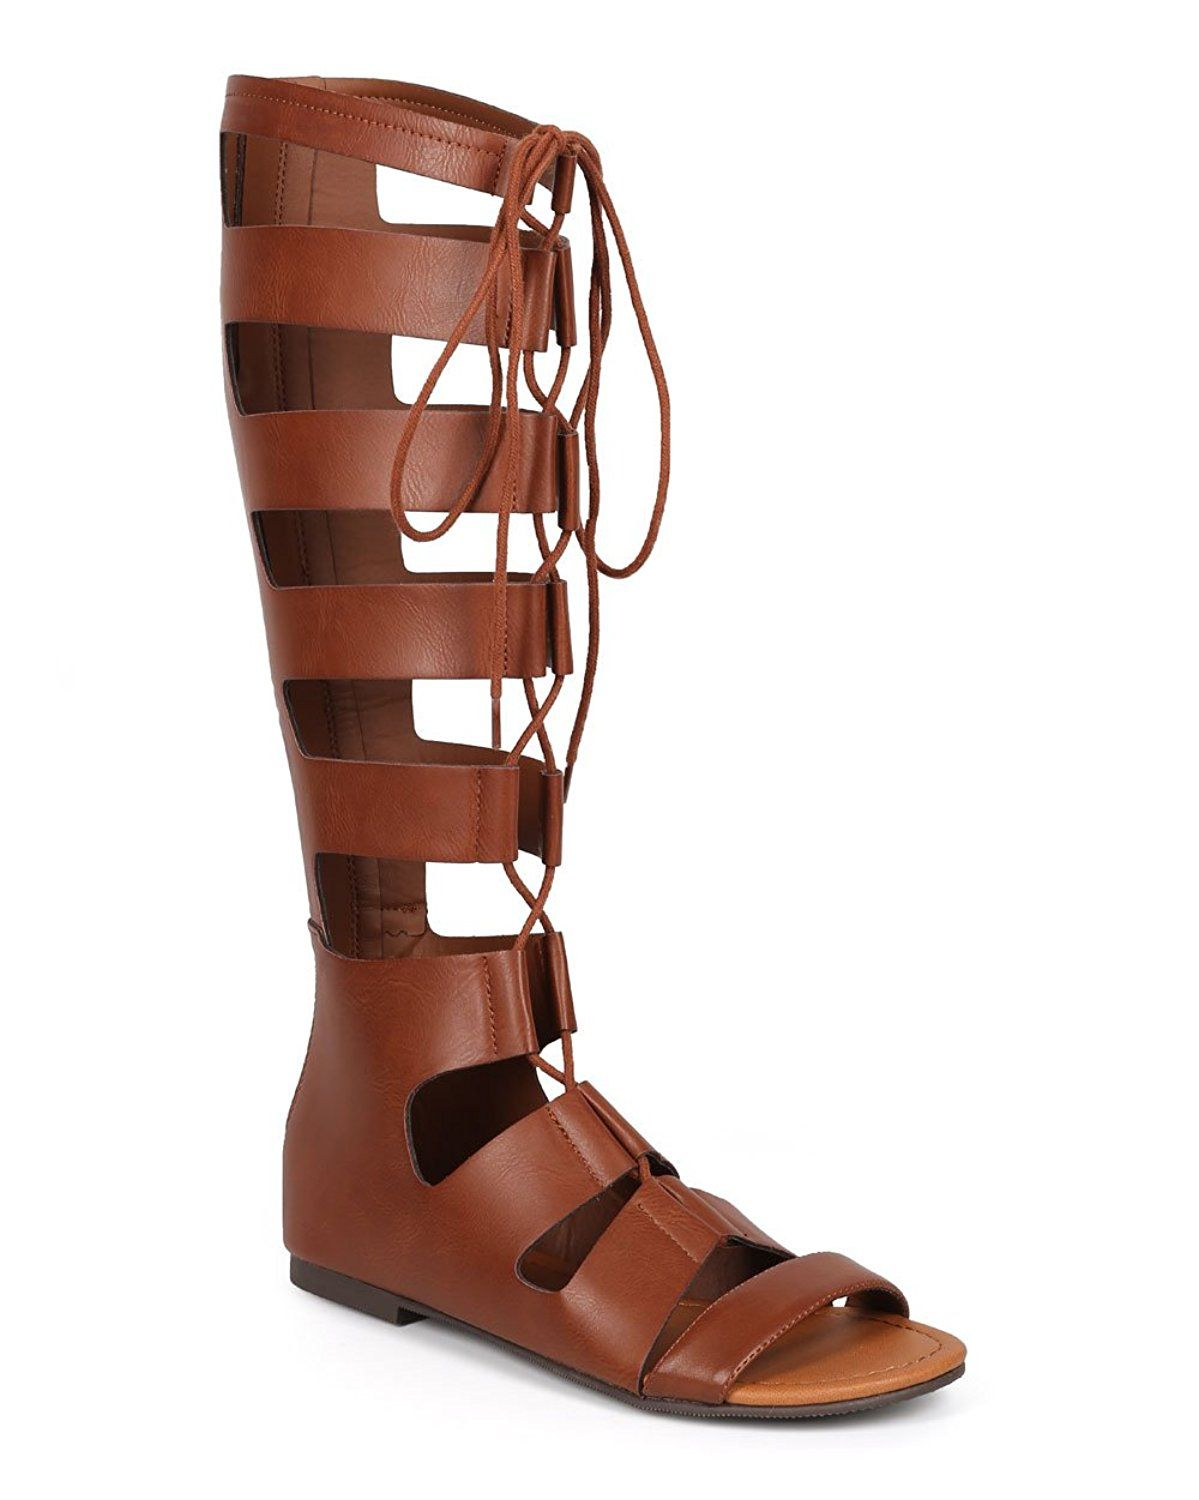 fac5485962bb Soda CI88 Women Knee High Leatherette Open Toe Lace Up Gladiator Sandal -  Tan   Discover this special product